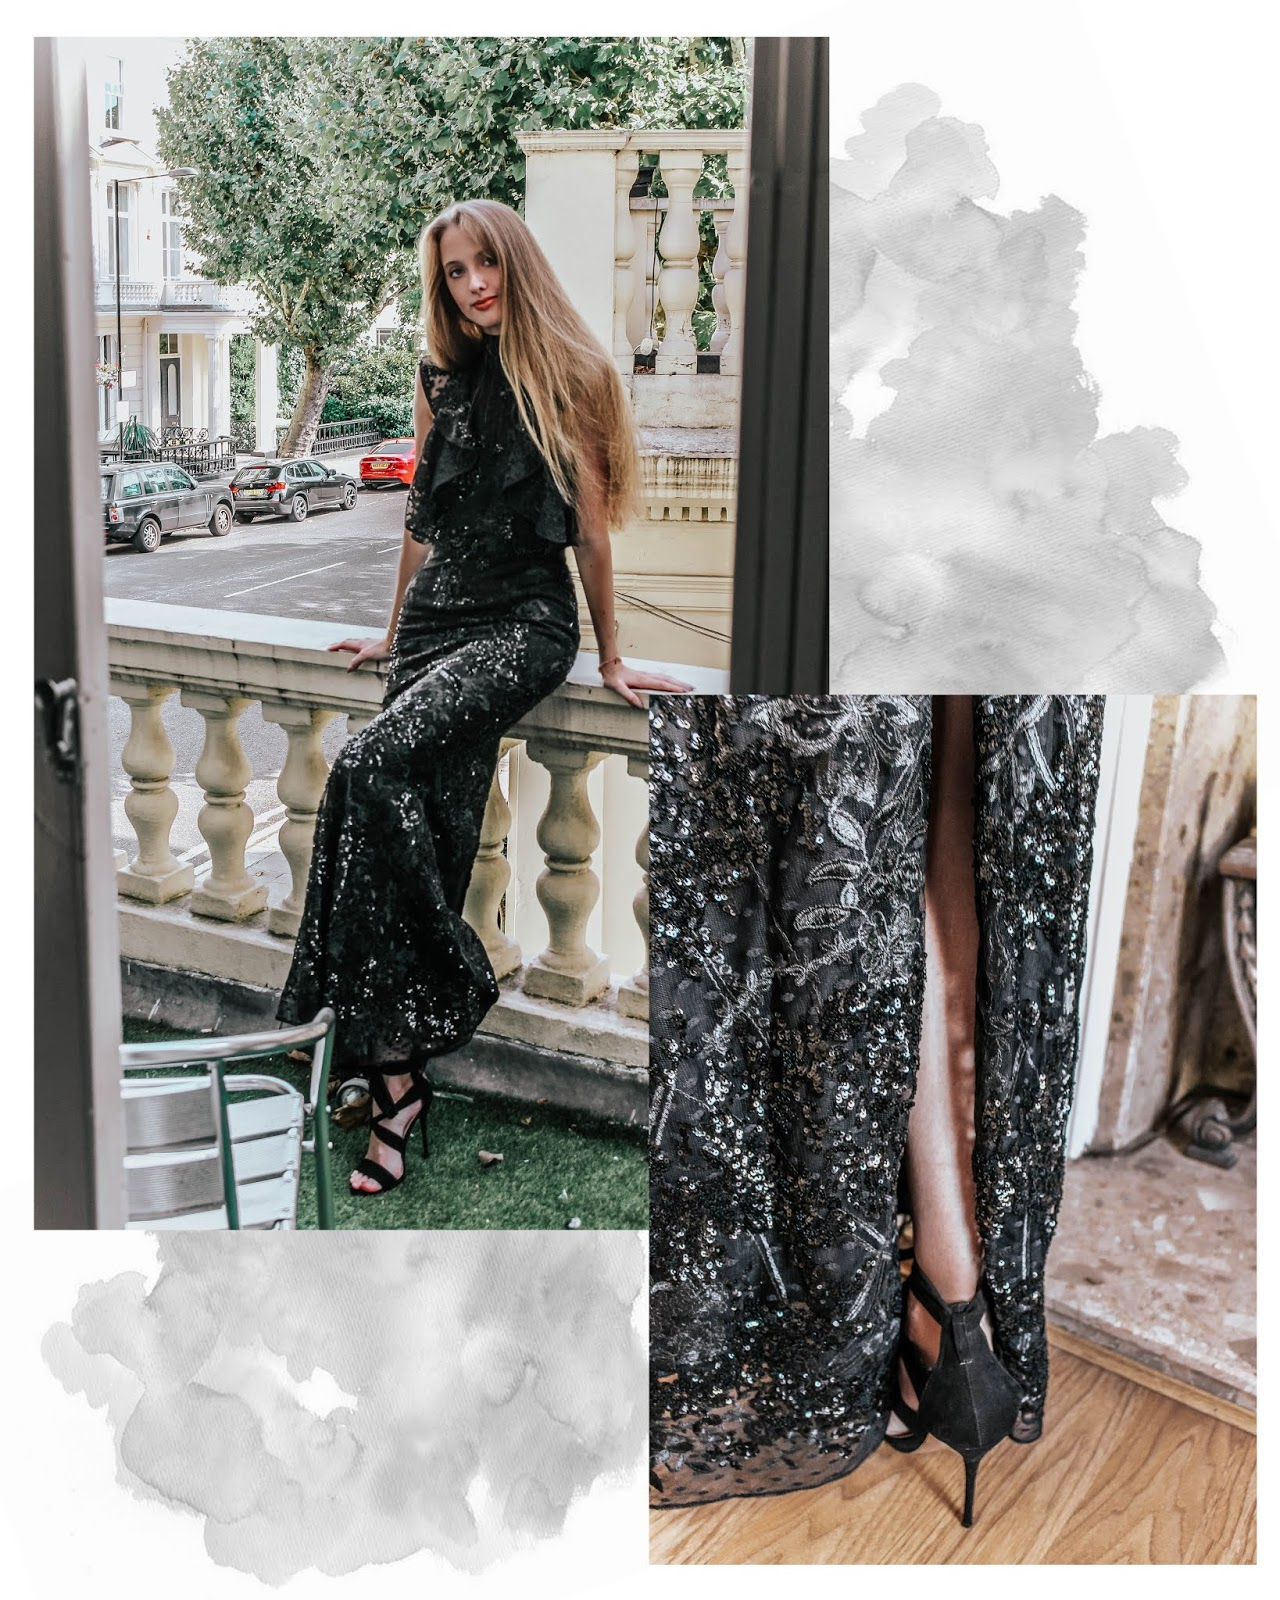 River Island High Street Embellished Black Maxi Dress